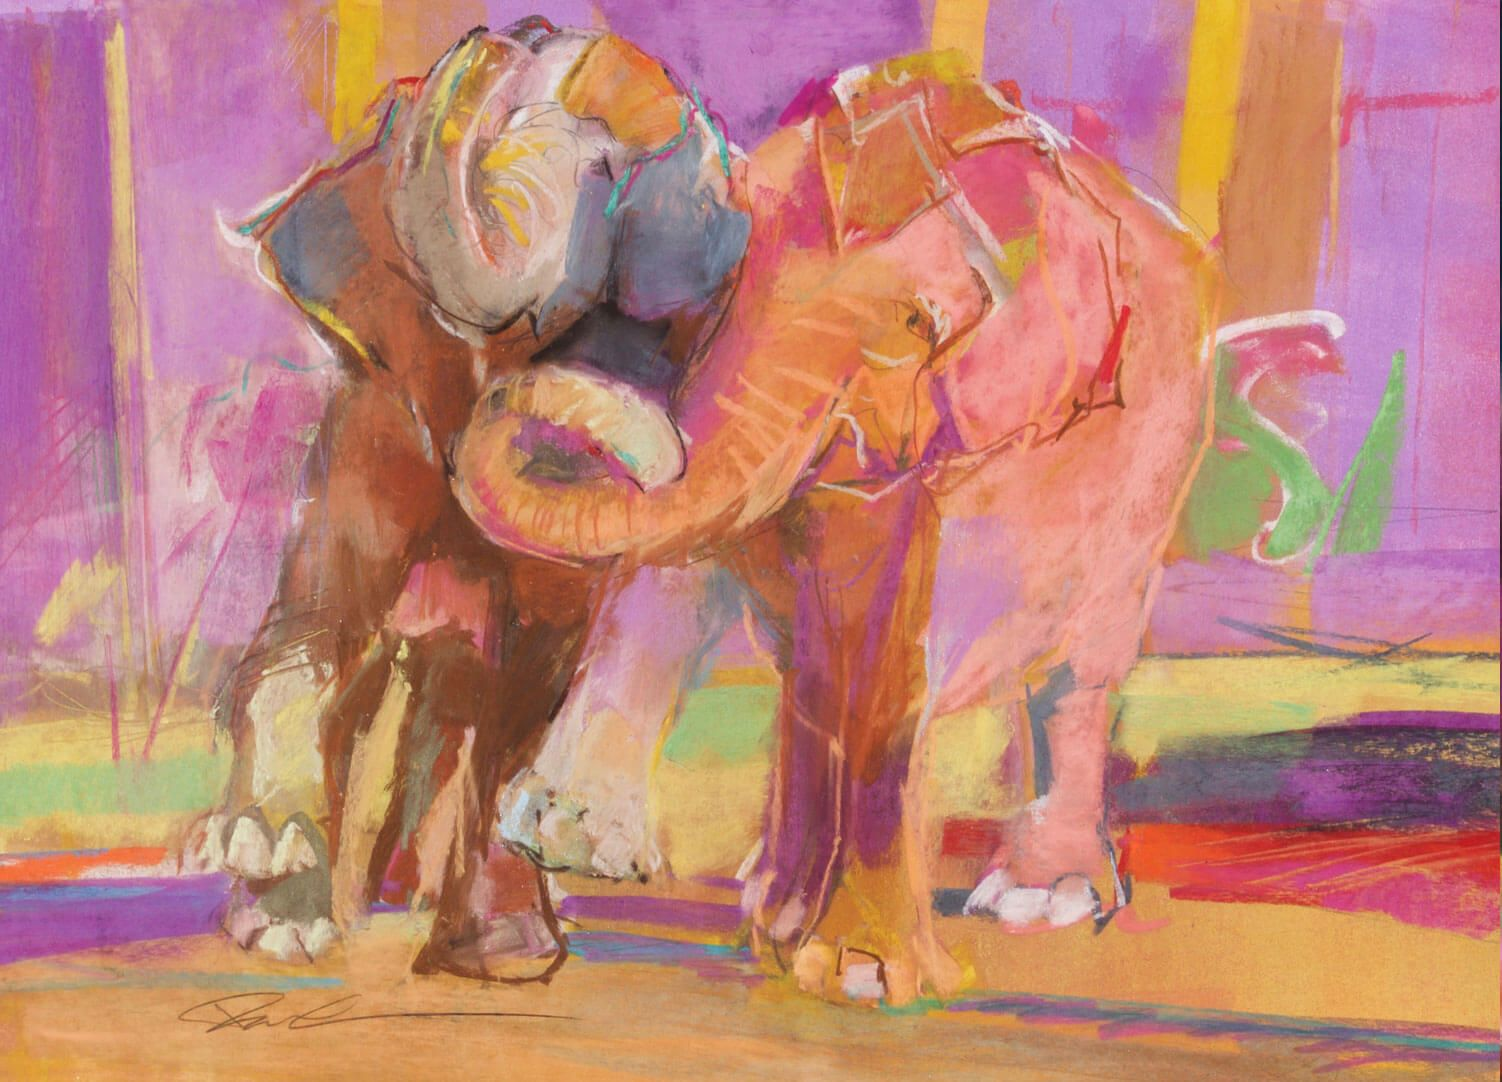 Elephant Pastel Painting by Dawn Emerson